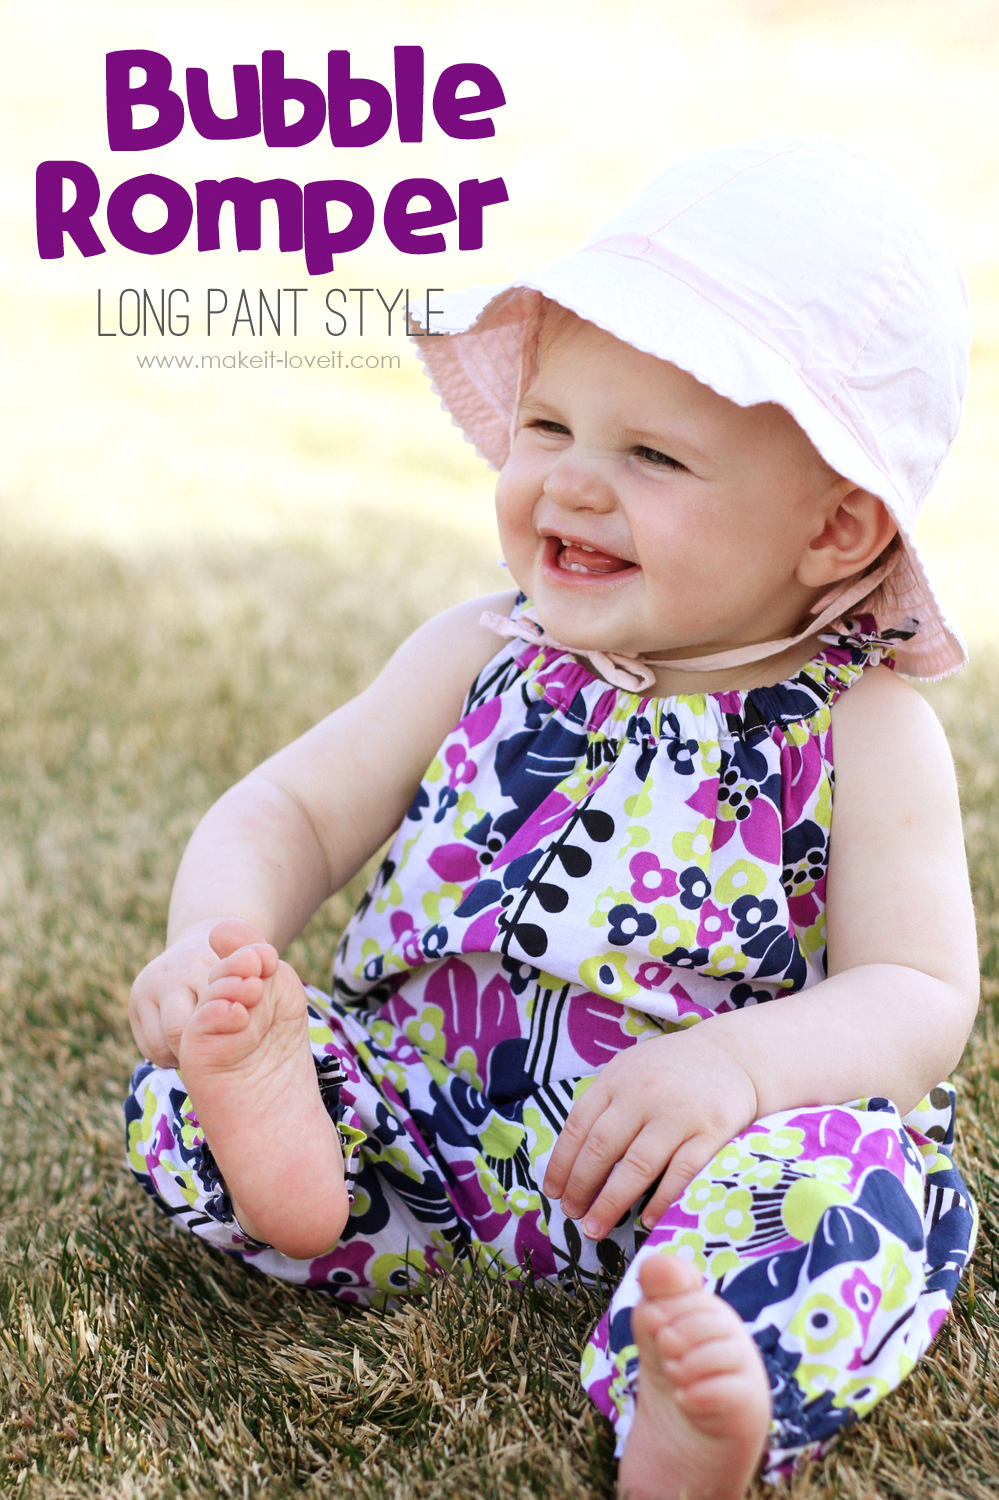 Bubble Romper for Baby: Long Pant style